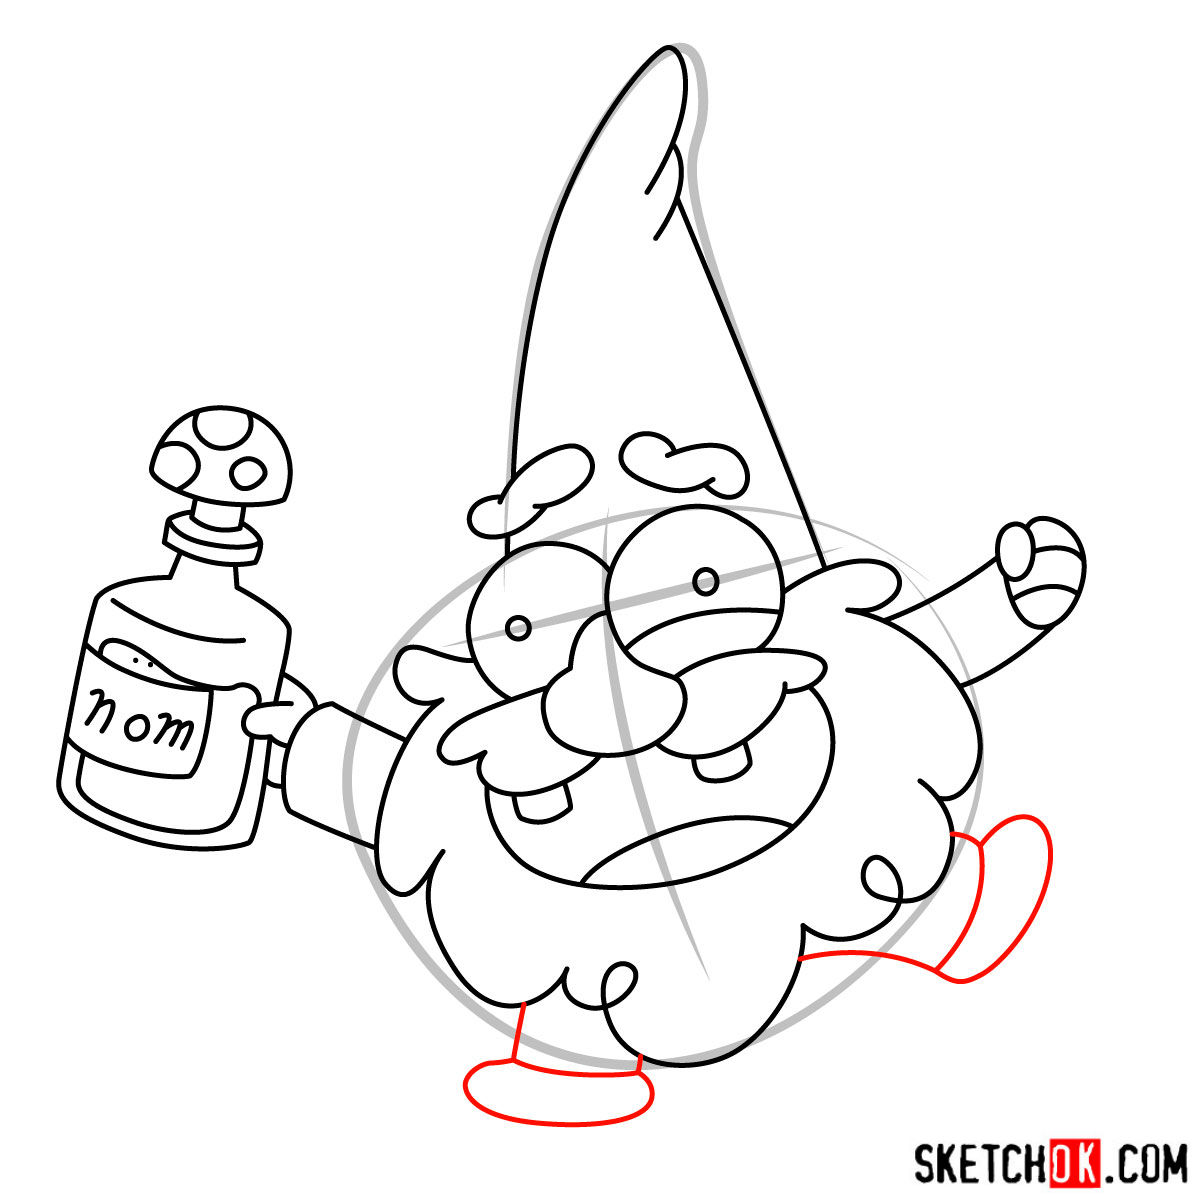 How To Draw Gnome From Gravity Falls